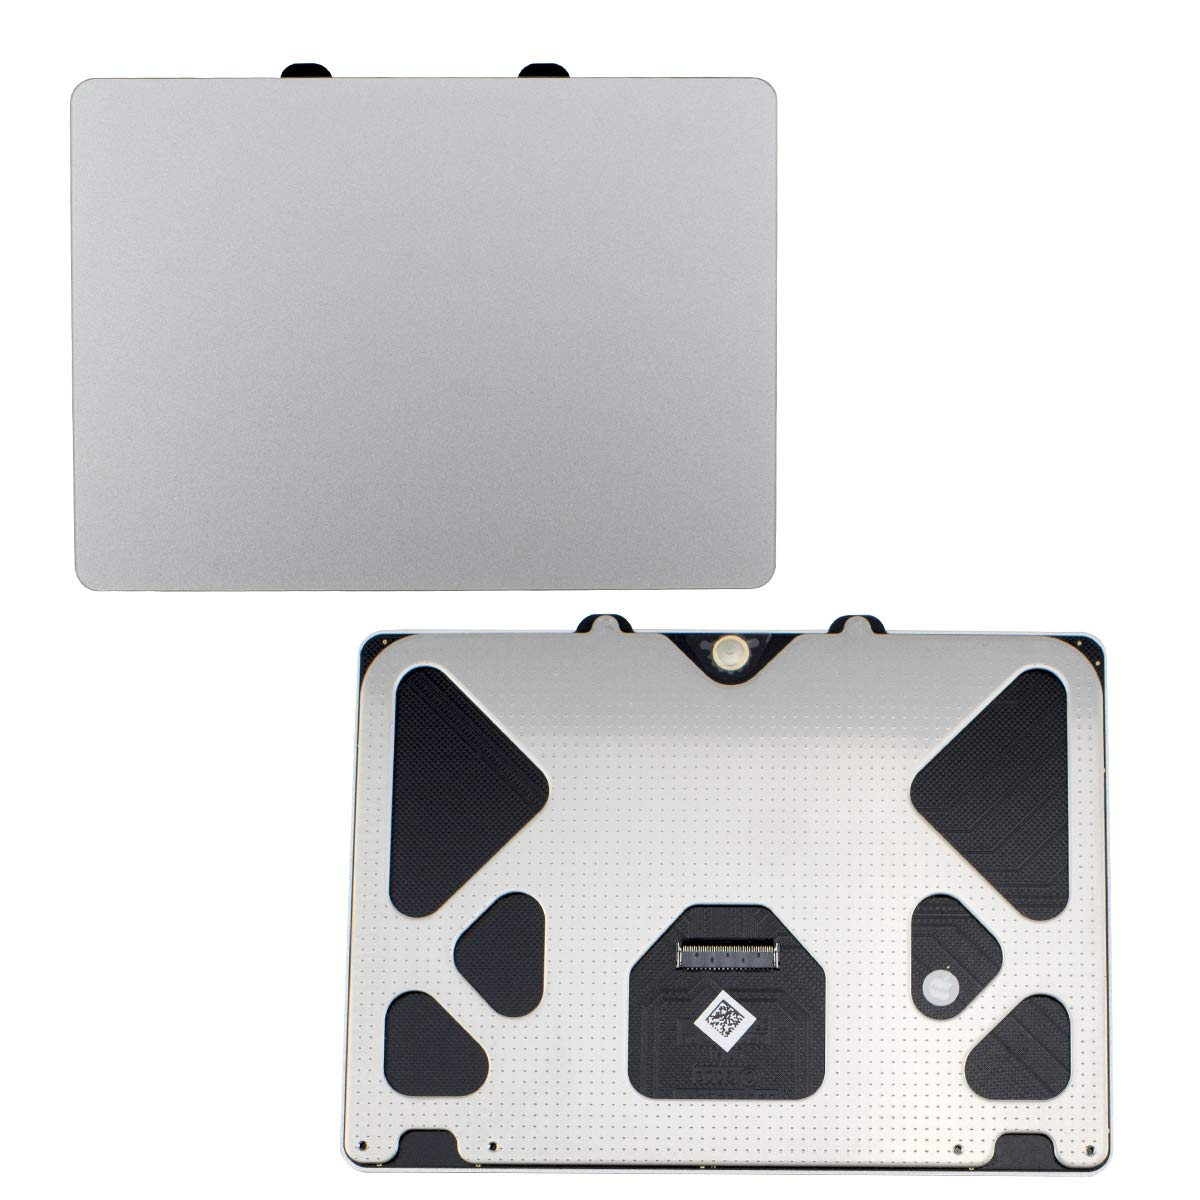 Totola Trackpad Touchpad for MacBook Pro 15'' Unibody A1286 Touch Pads Without Flex Cable (Fit 2009 2010 2011 2012 Version)& Fit for MacBook 13'' A1278 (Mid 2009-Mid 2012 Version) by Totola